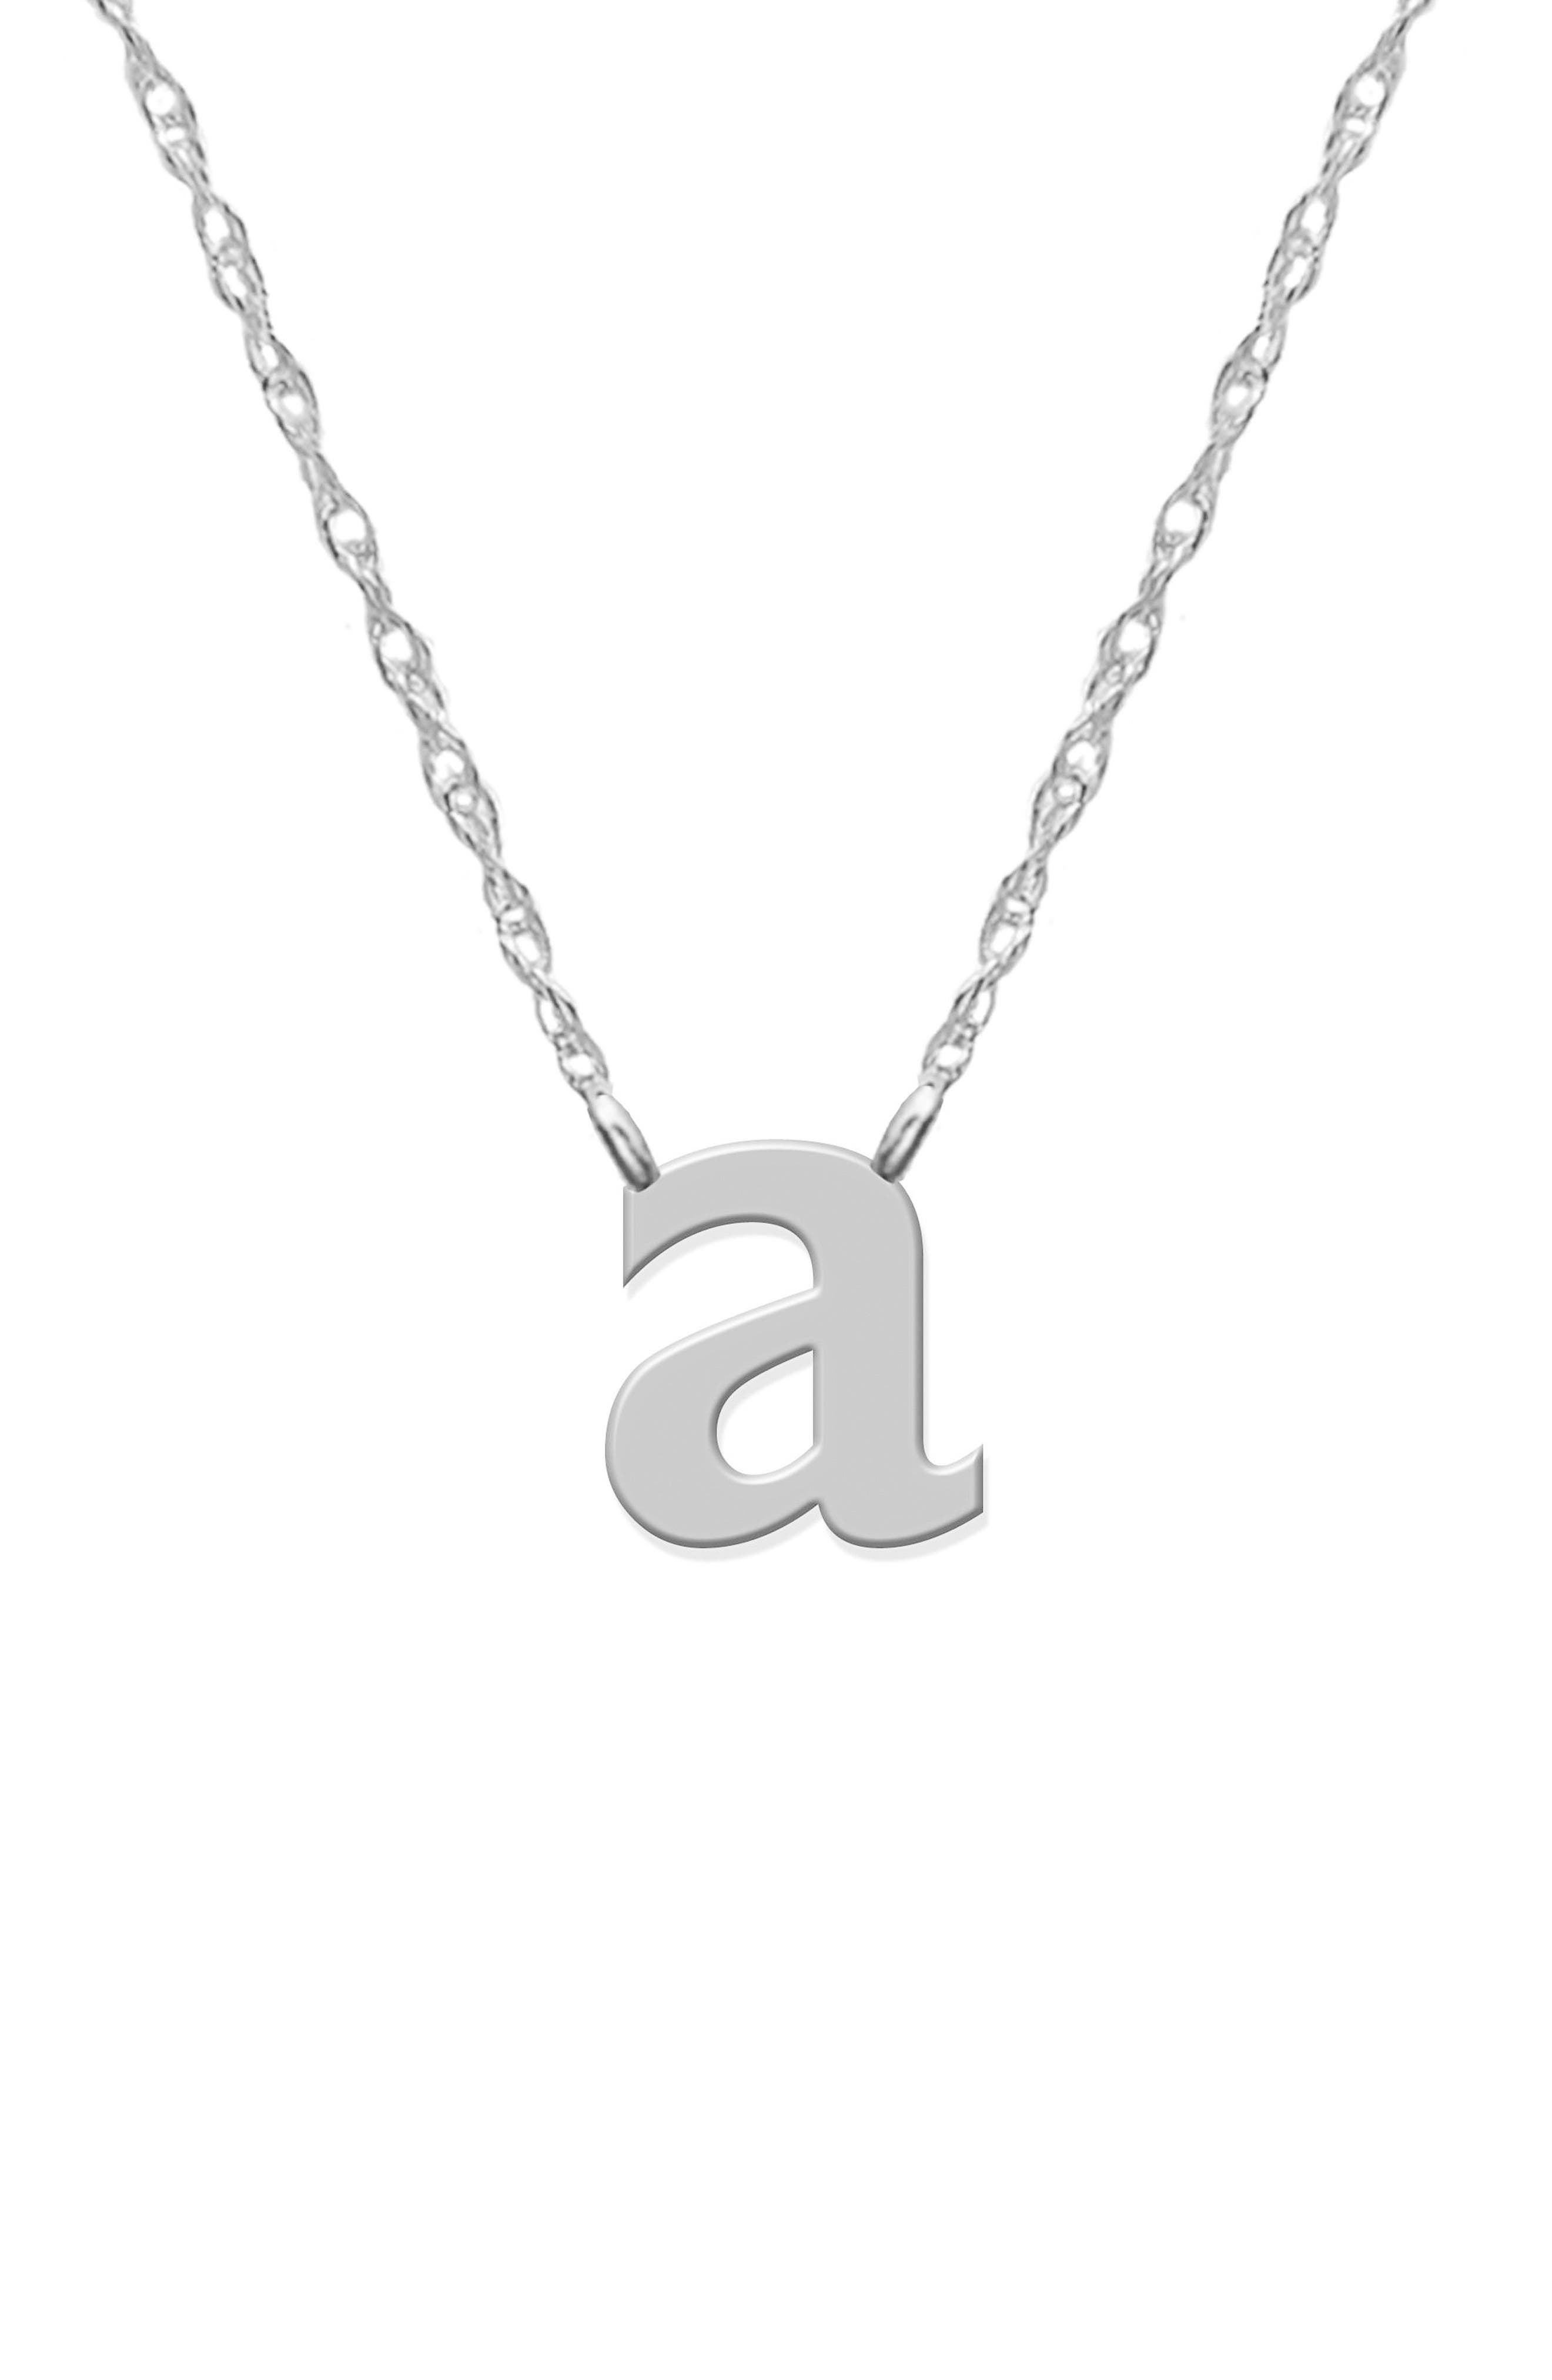 Alternate Image 1 Selected - Jane Basch Designs Initial Pendant Necklace